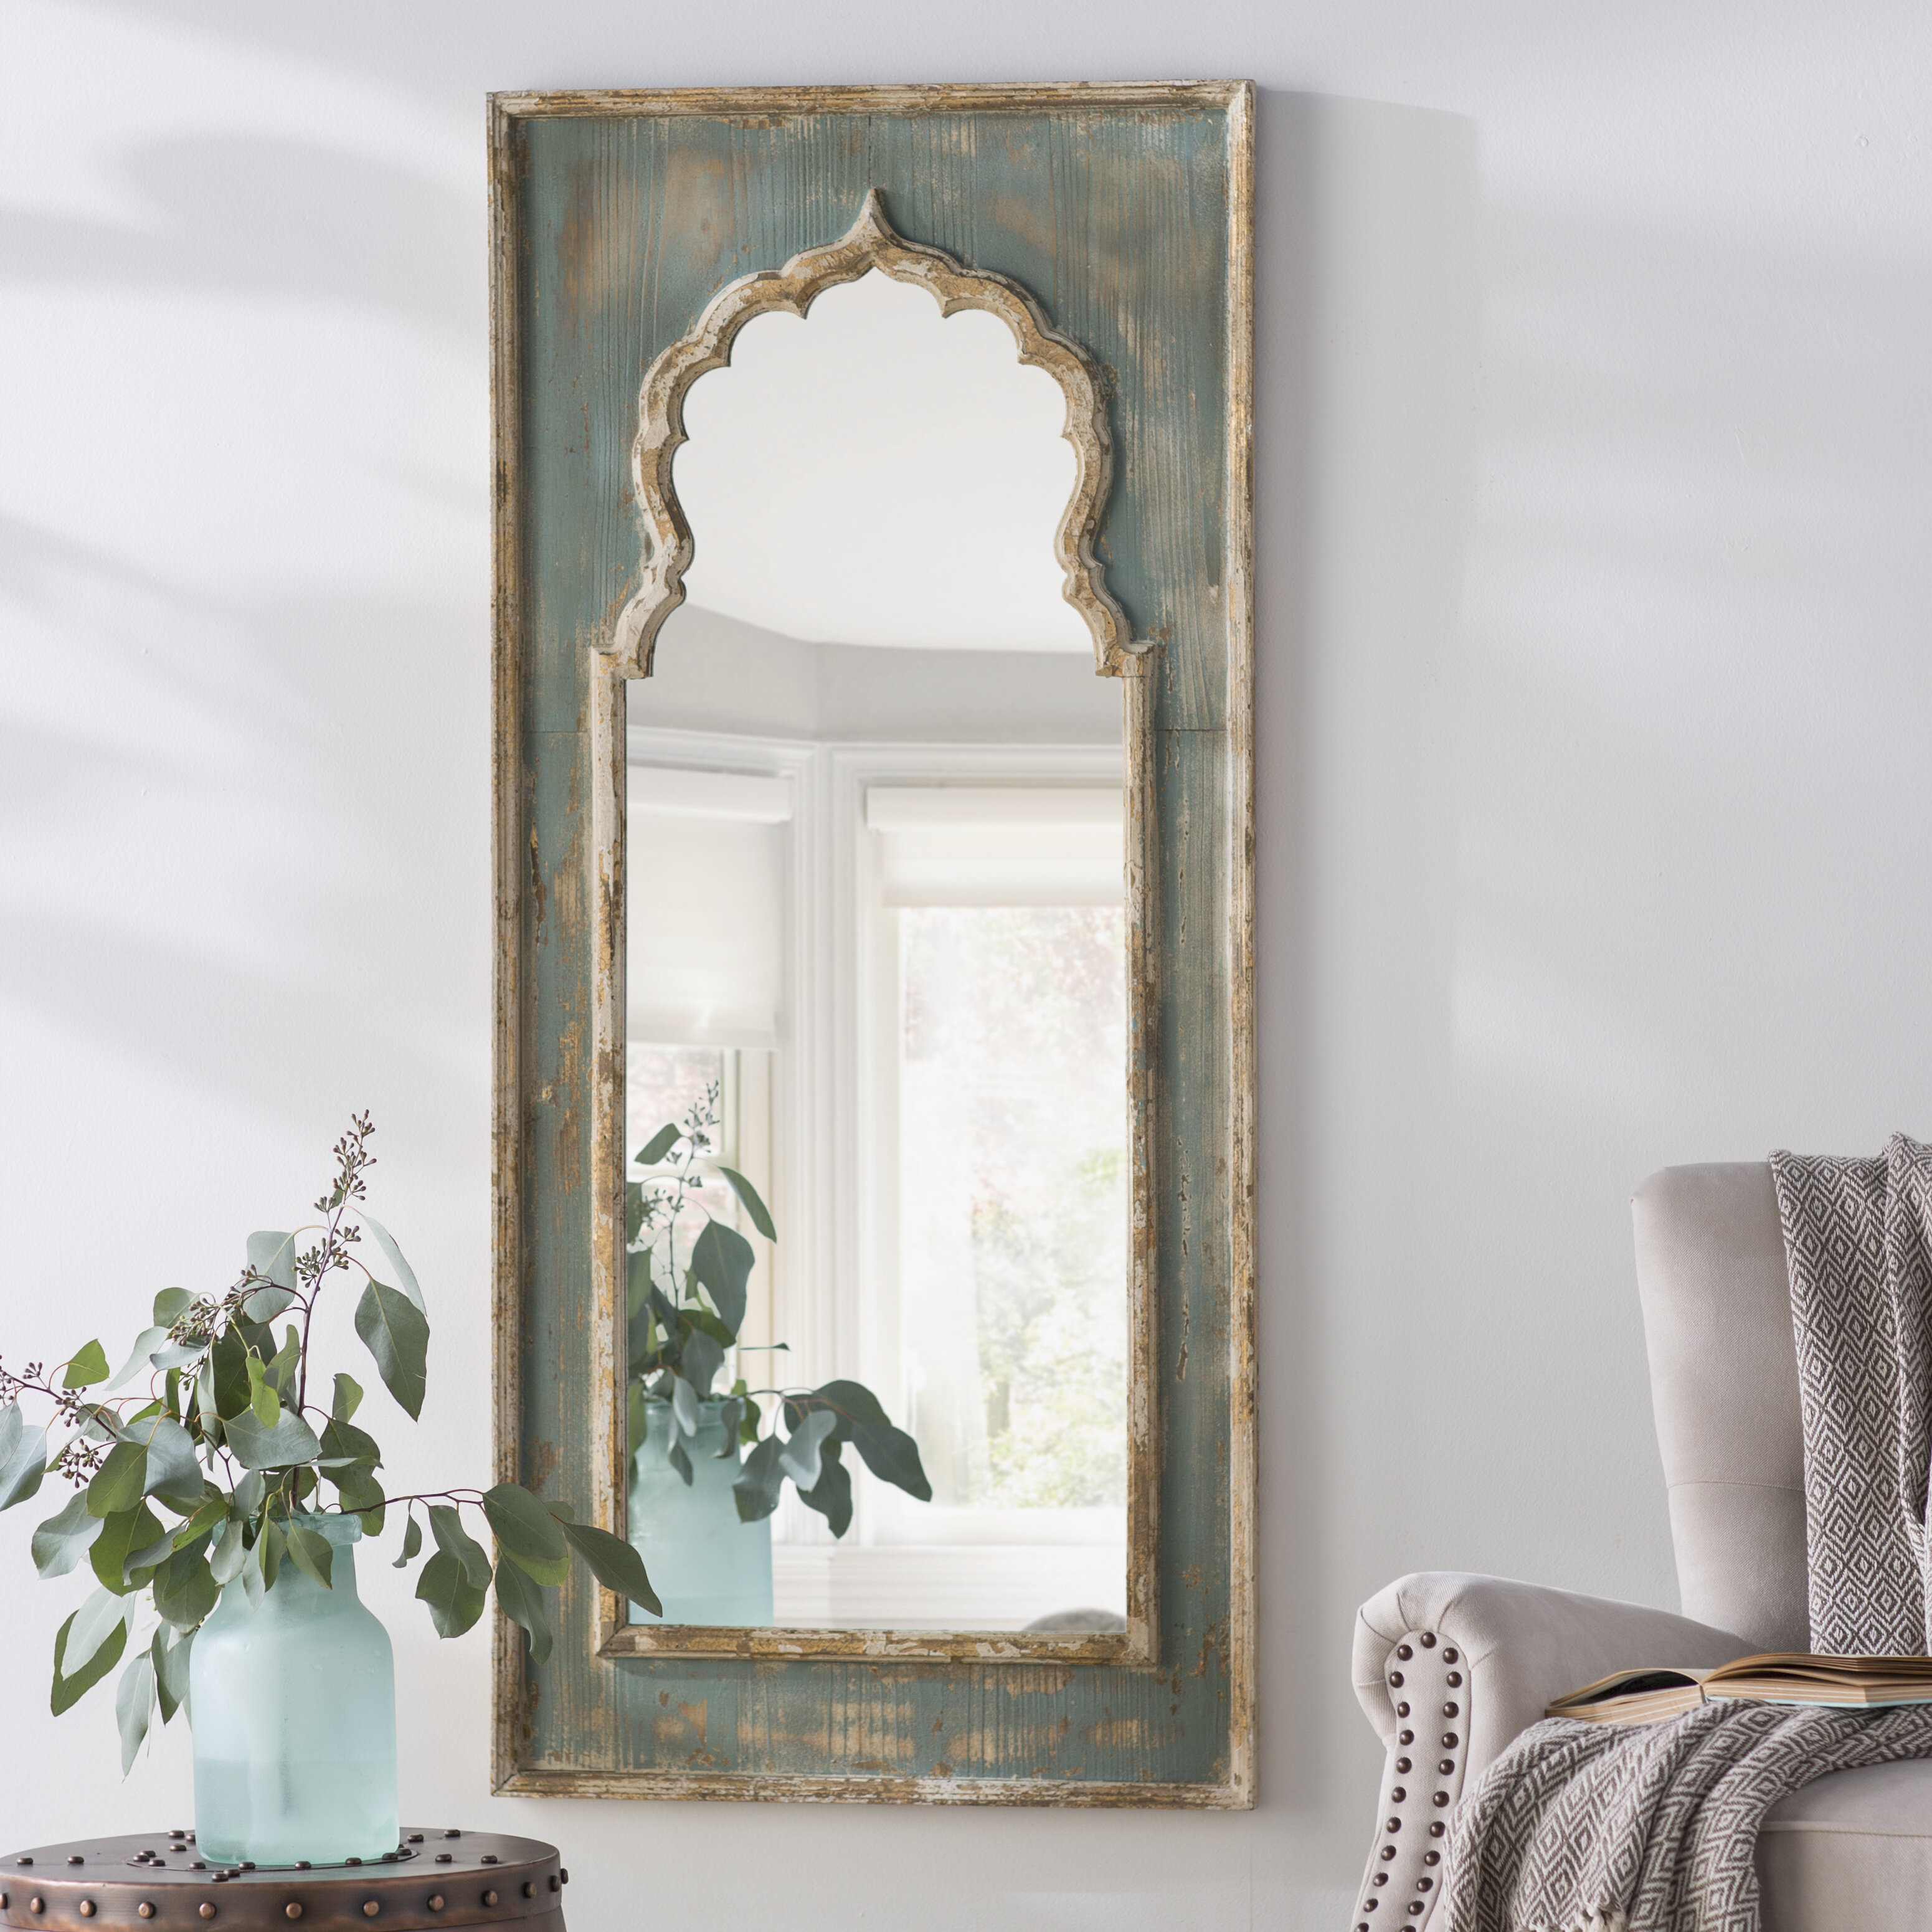 Gold Large Oversized Floor Mirrors You Ll Love In 2021 Wayfair